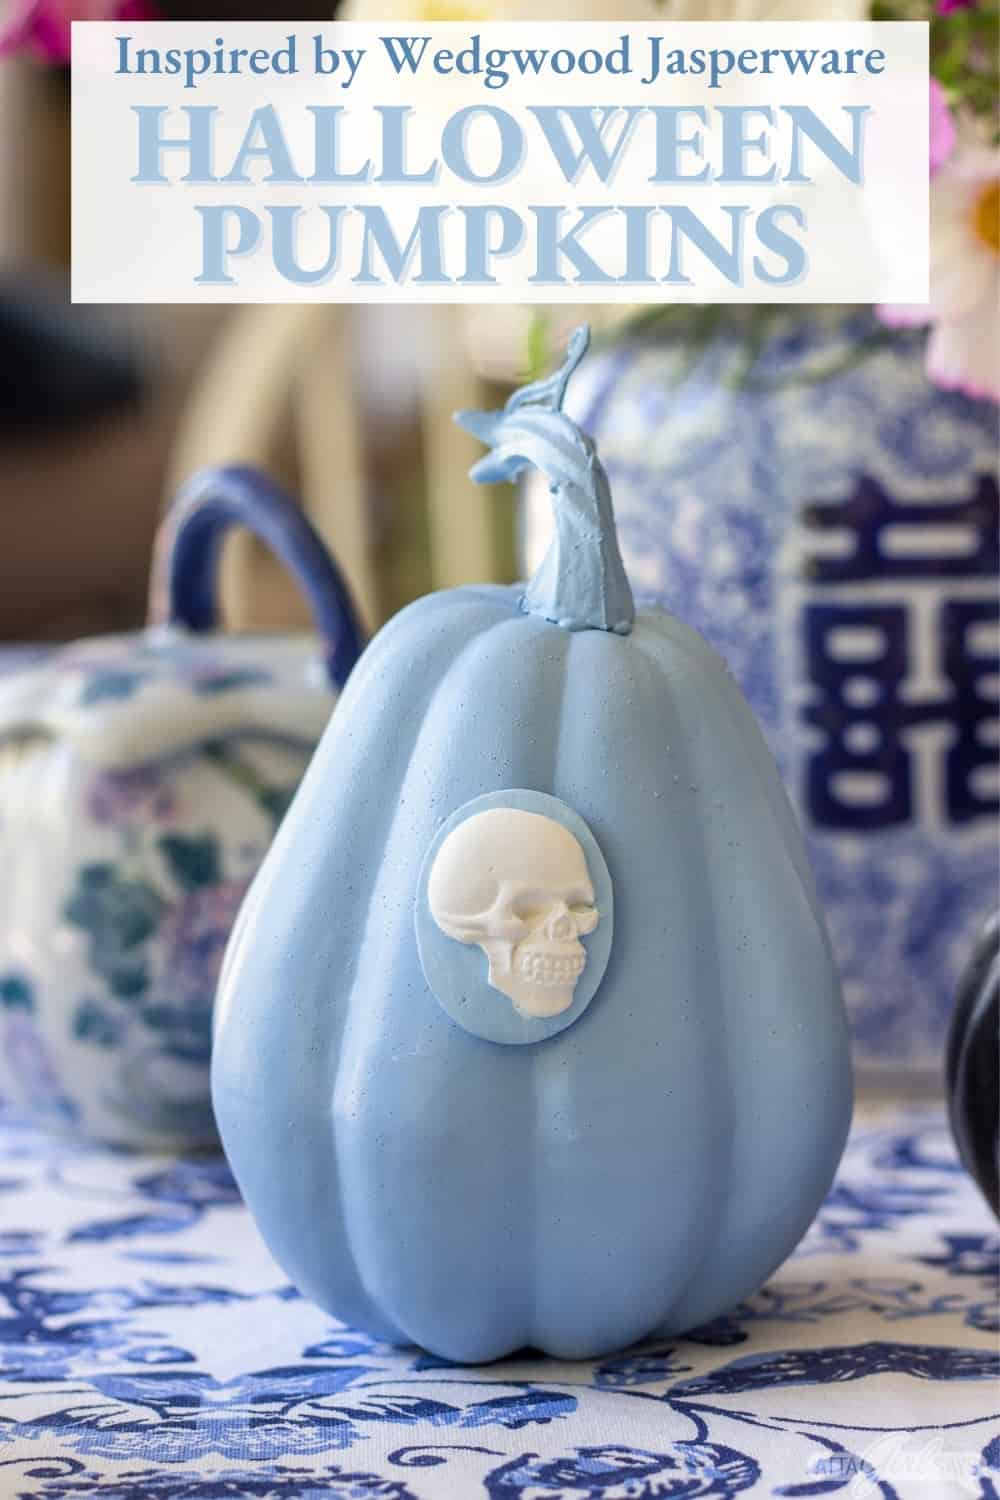 blue and white Wedgwood Jasperware style pumpkin with a skull cameo